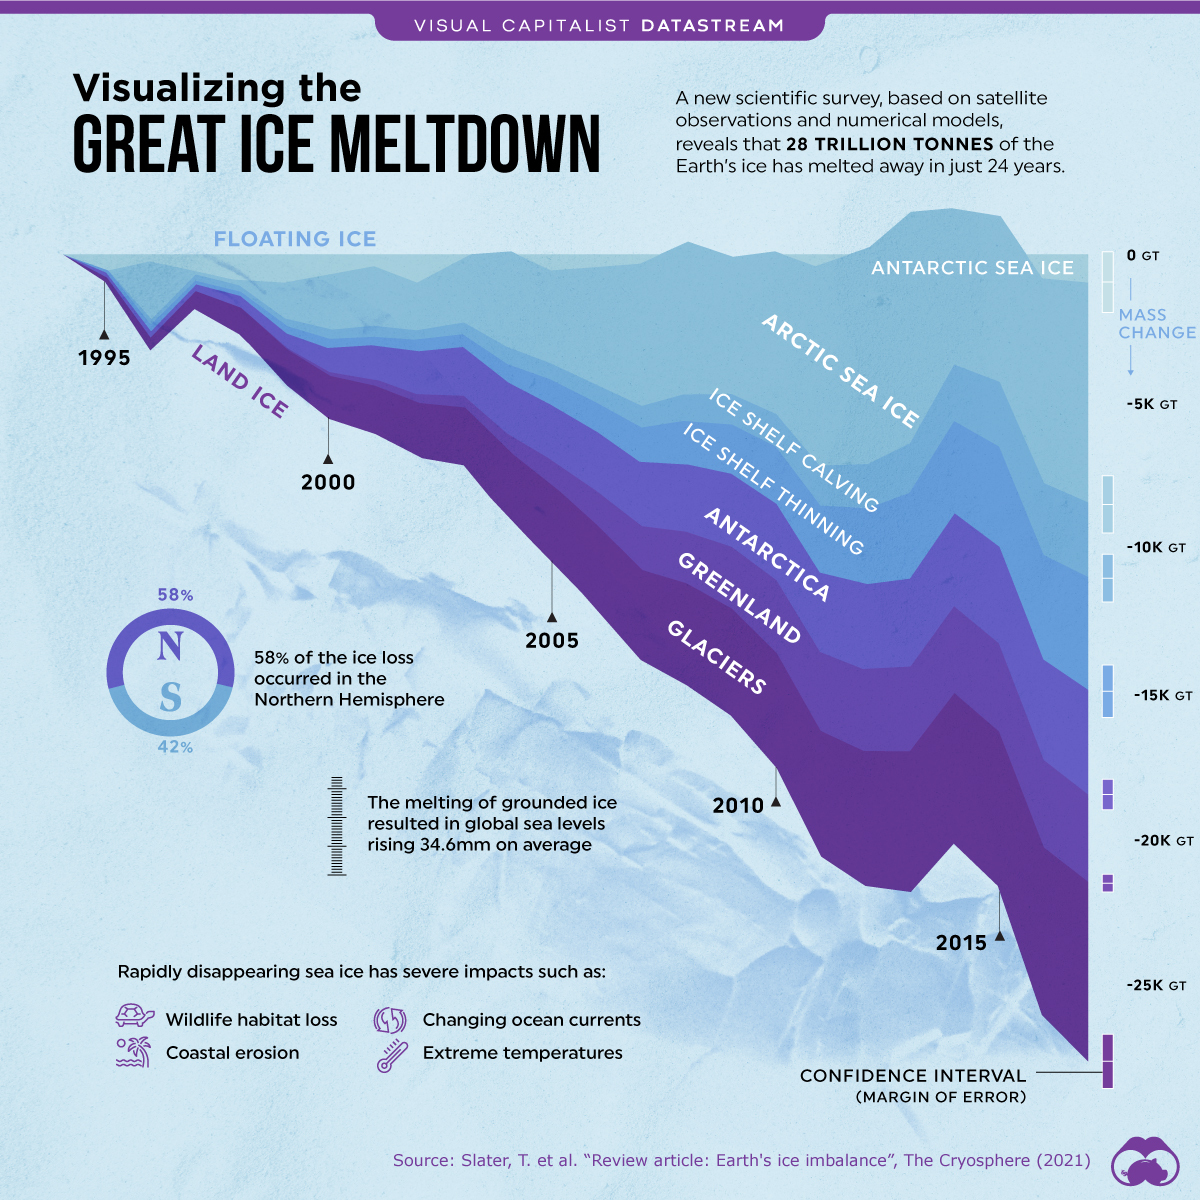 The great ice meldown